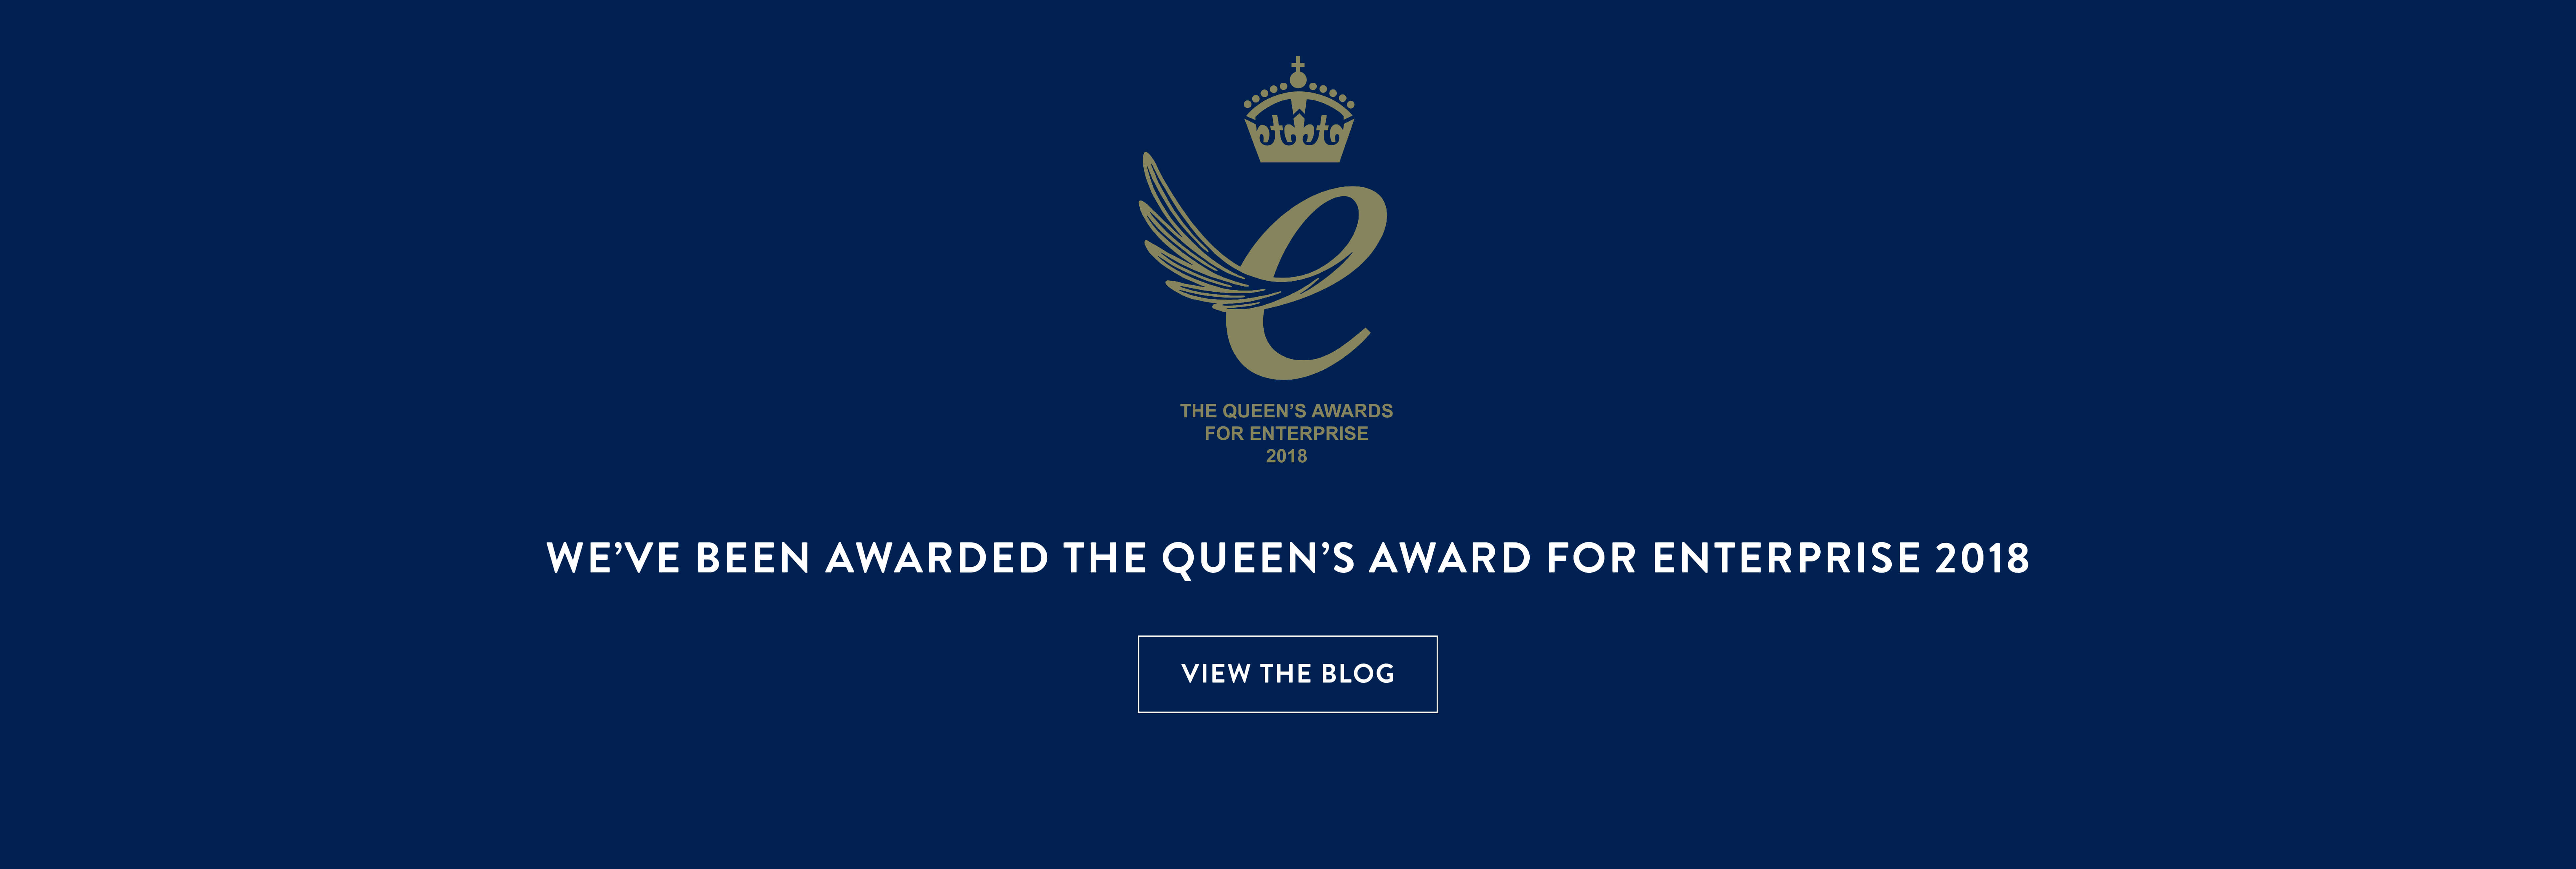 Queens Award Homepage Carousel 200418